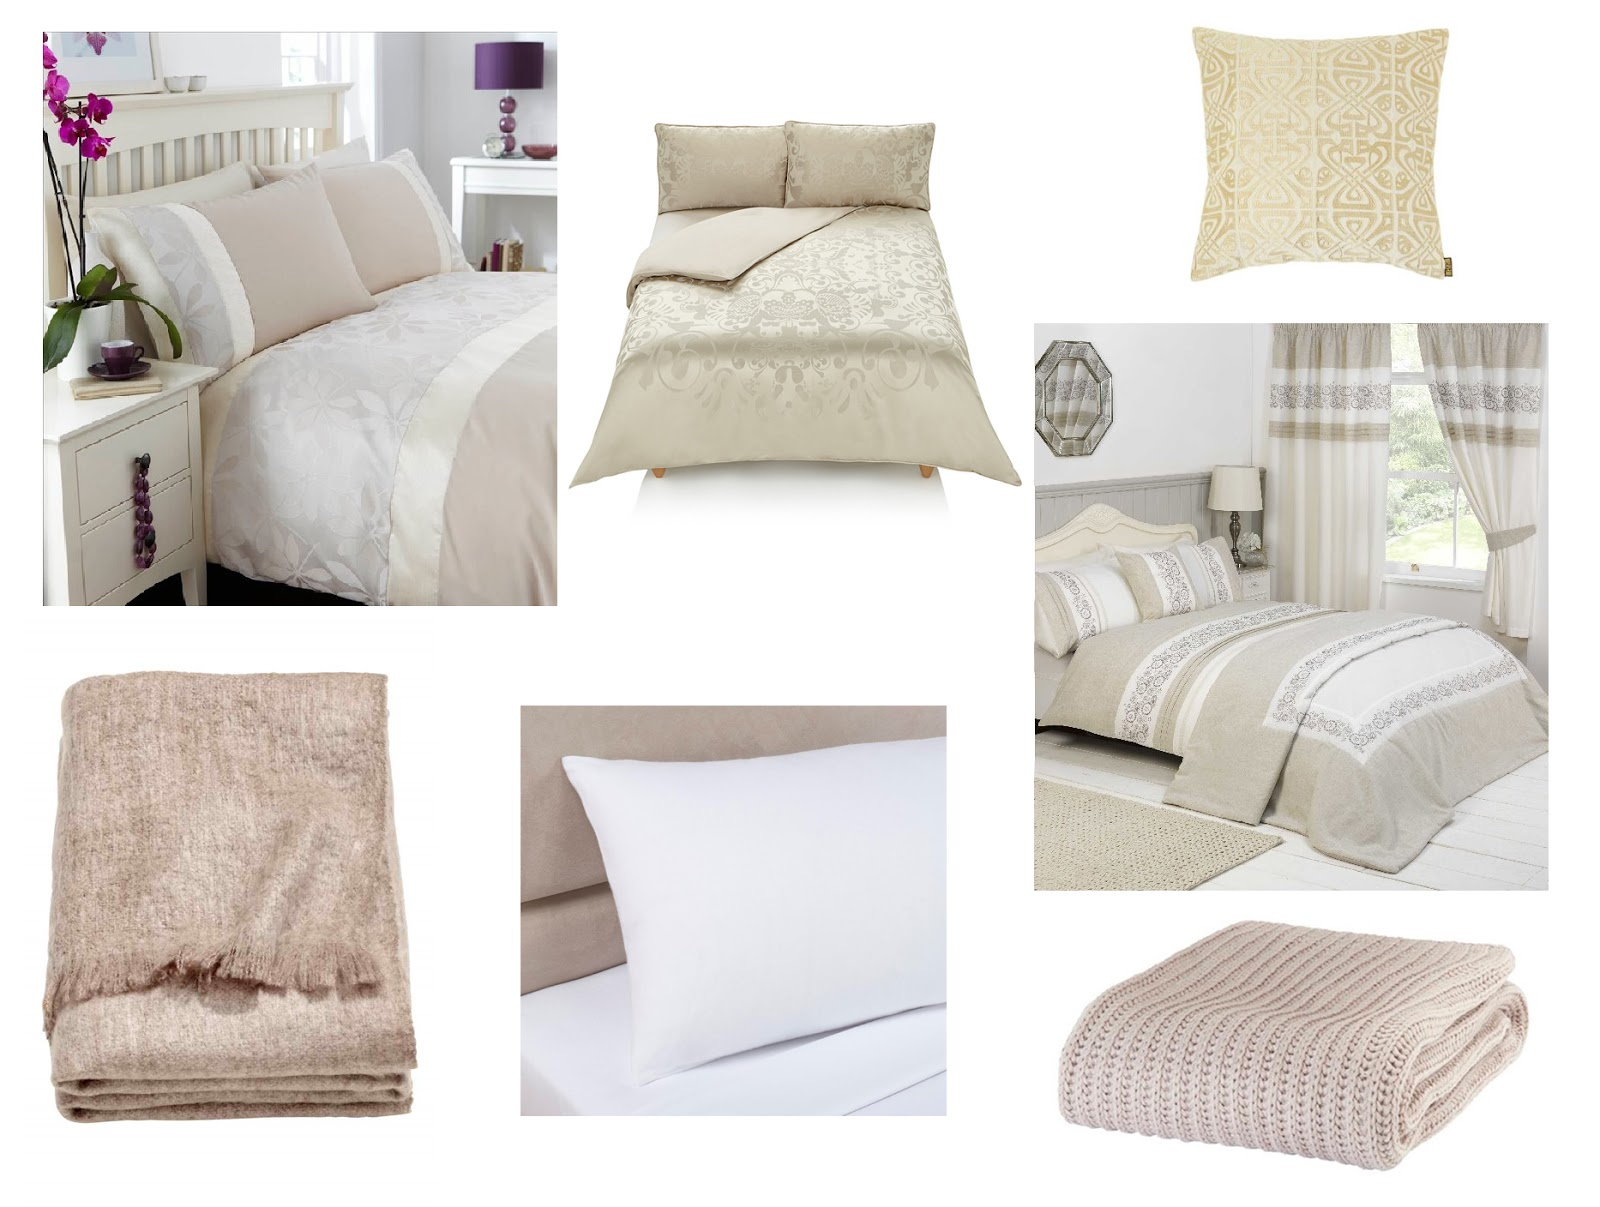 Bedding For Changing Your Bedroom Atomsphere: Neutral Moodboard | Katie Kirk Loves